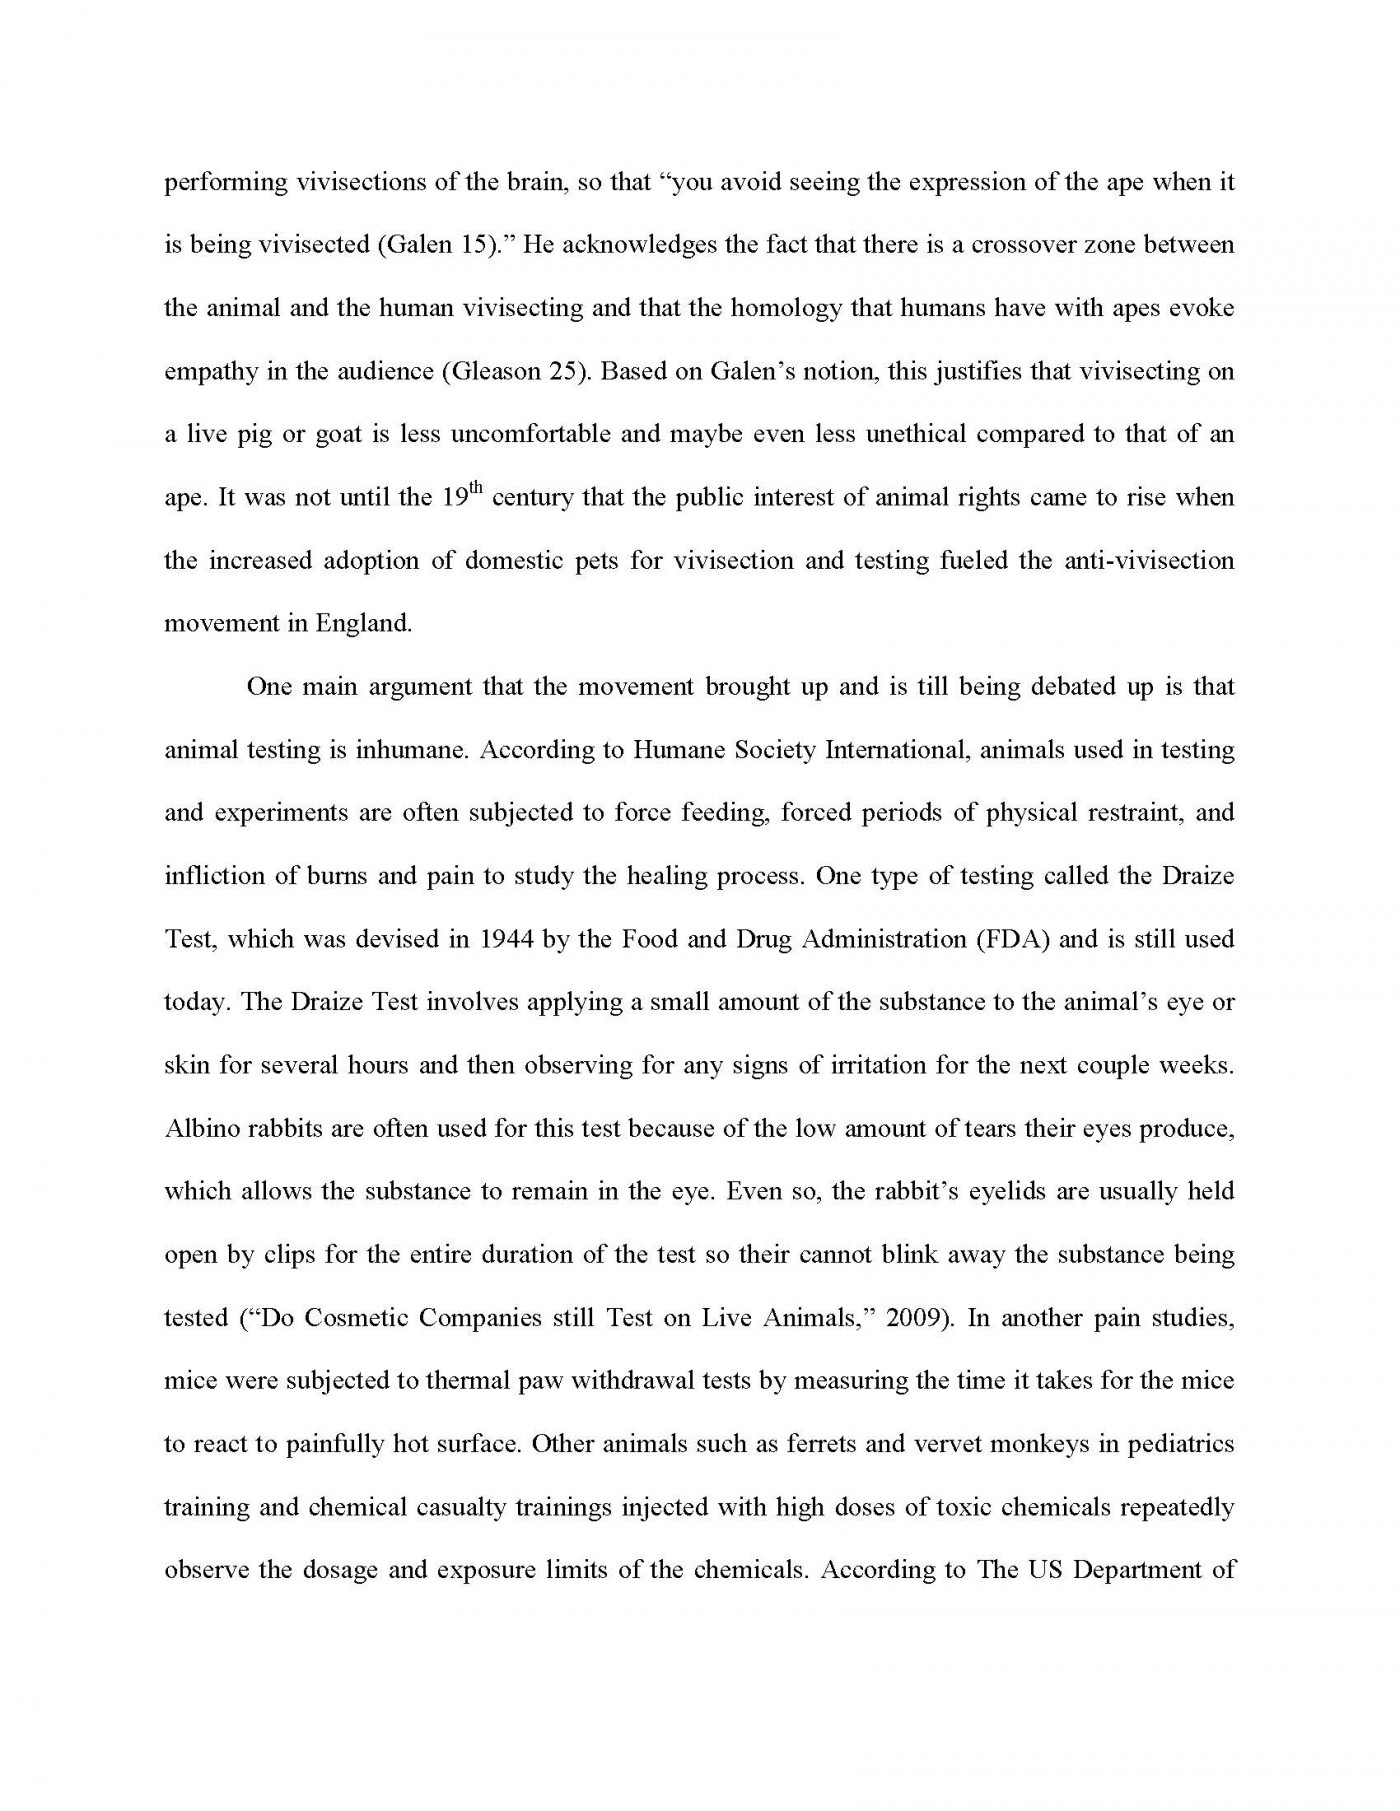 008 Cruelty To Animals Essay Example Animal Testing Final Page 2 Wondrous In Circus Stop And Birds 1400